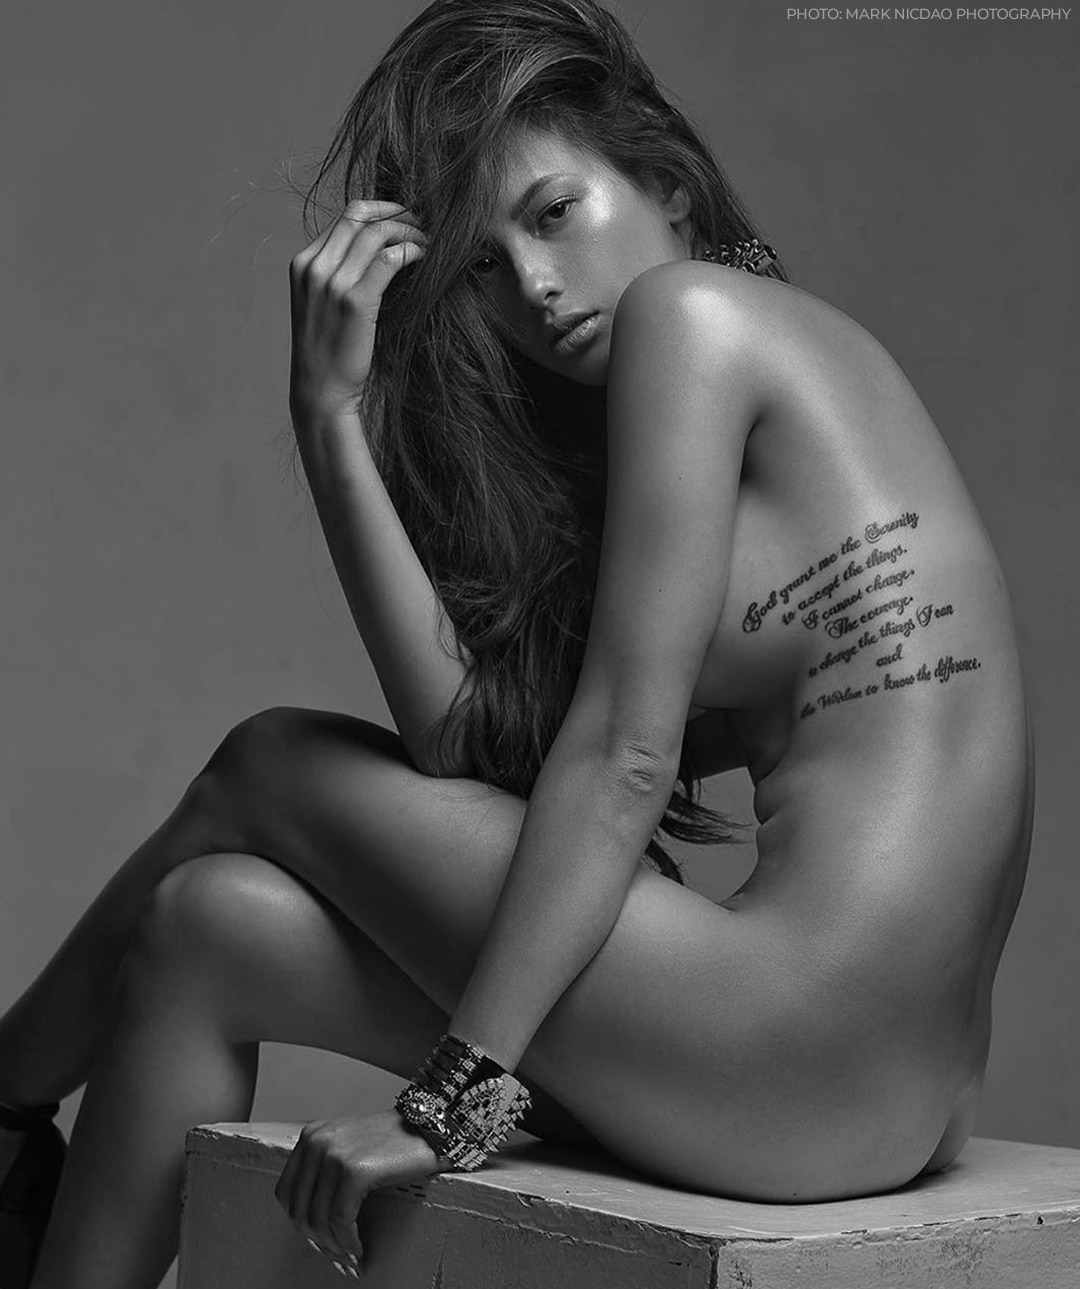 Ellen Adarna's tattoo of Reinhold Niebuhr's quote by her rib cage